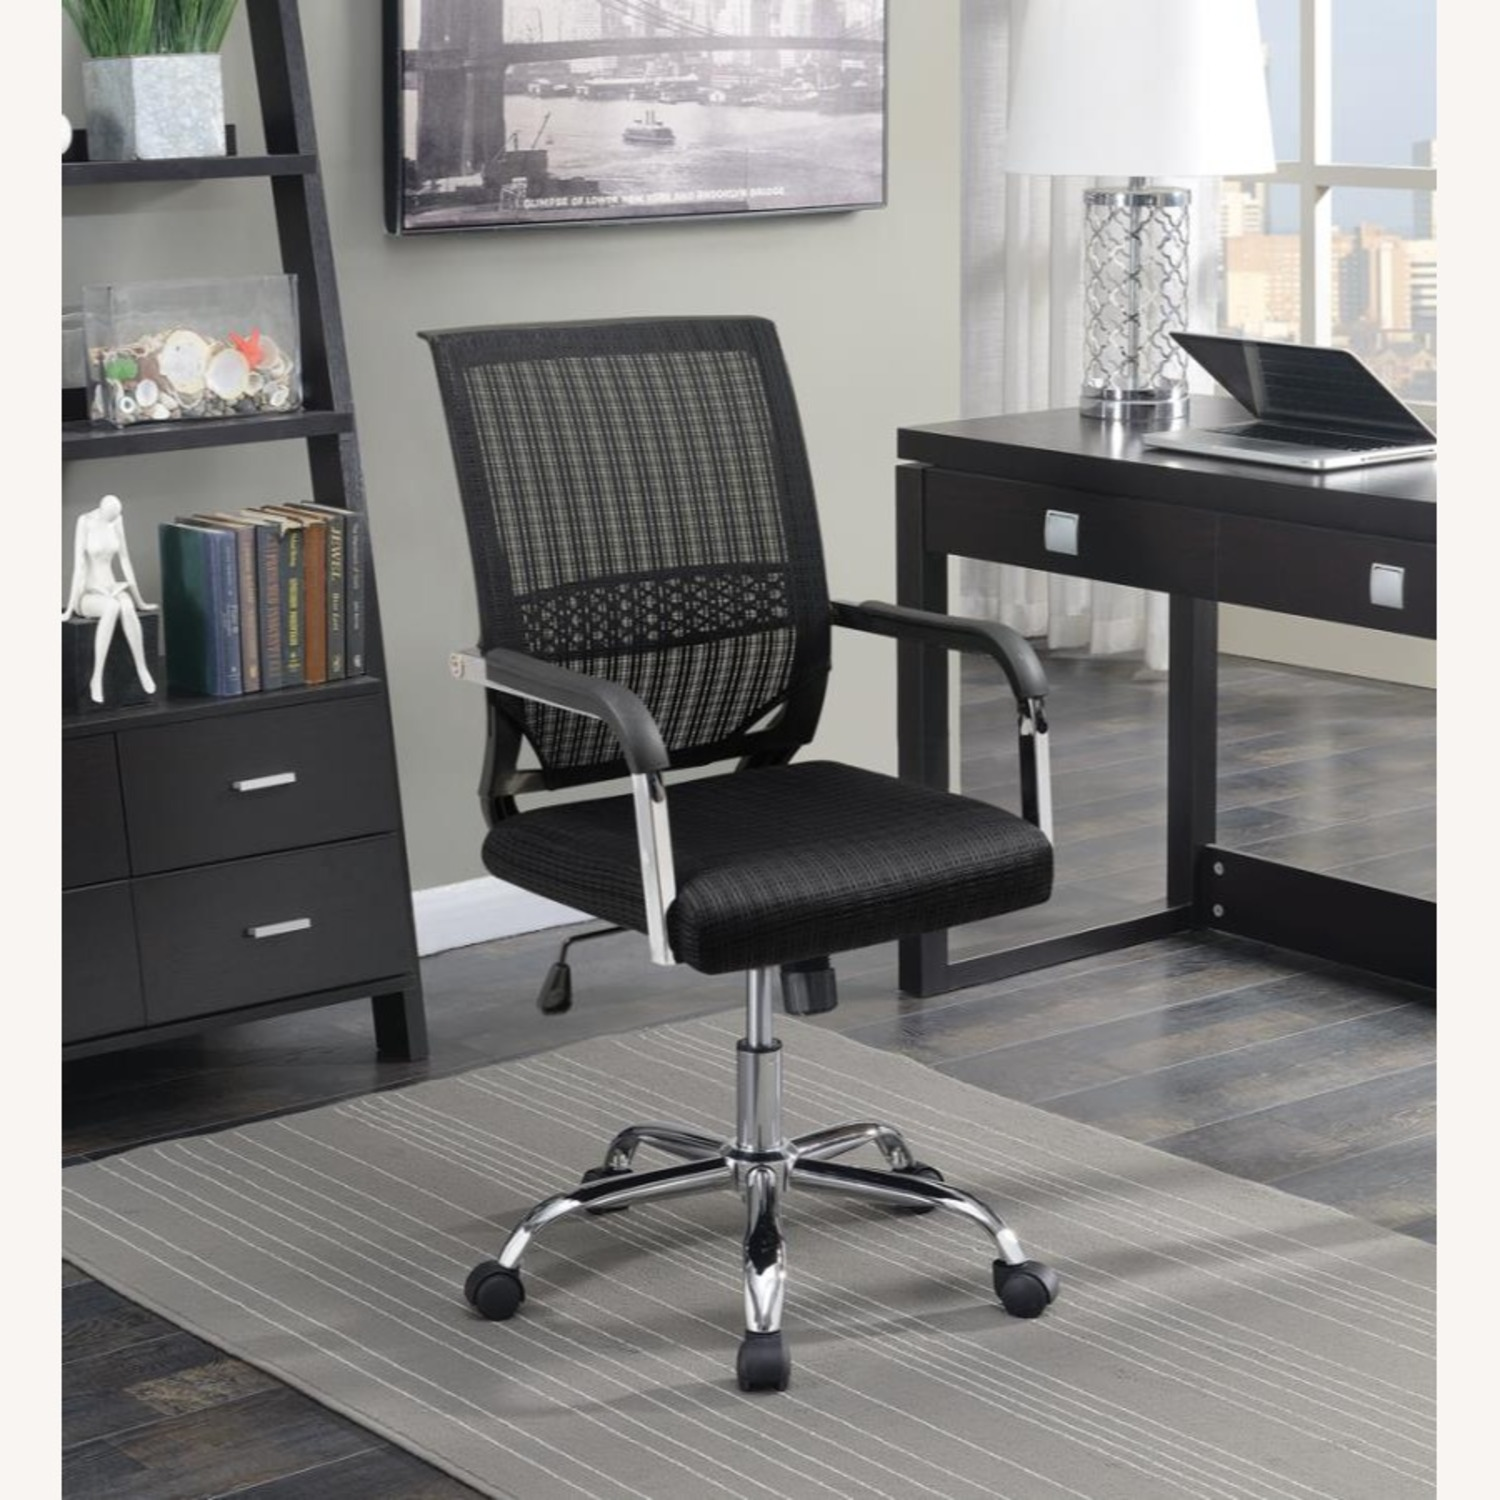 Office Chair In Black Fabric Finish W/ Mesh Back - image-5